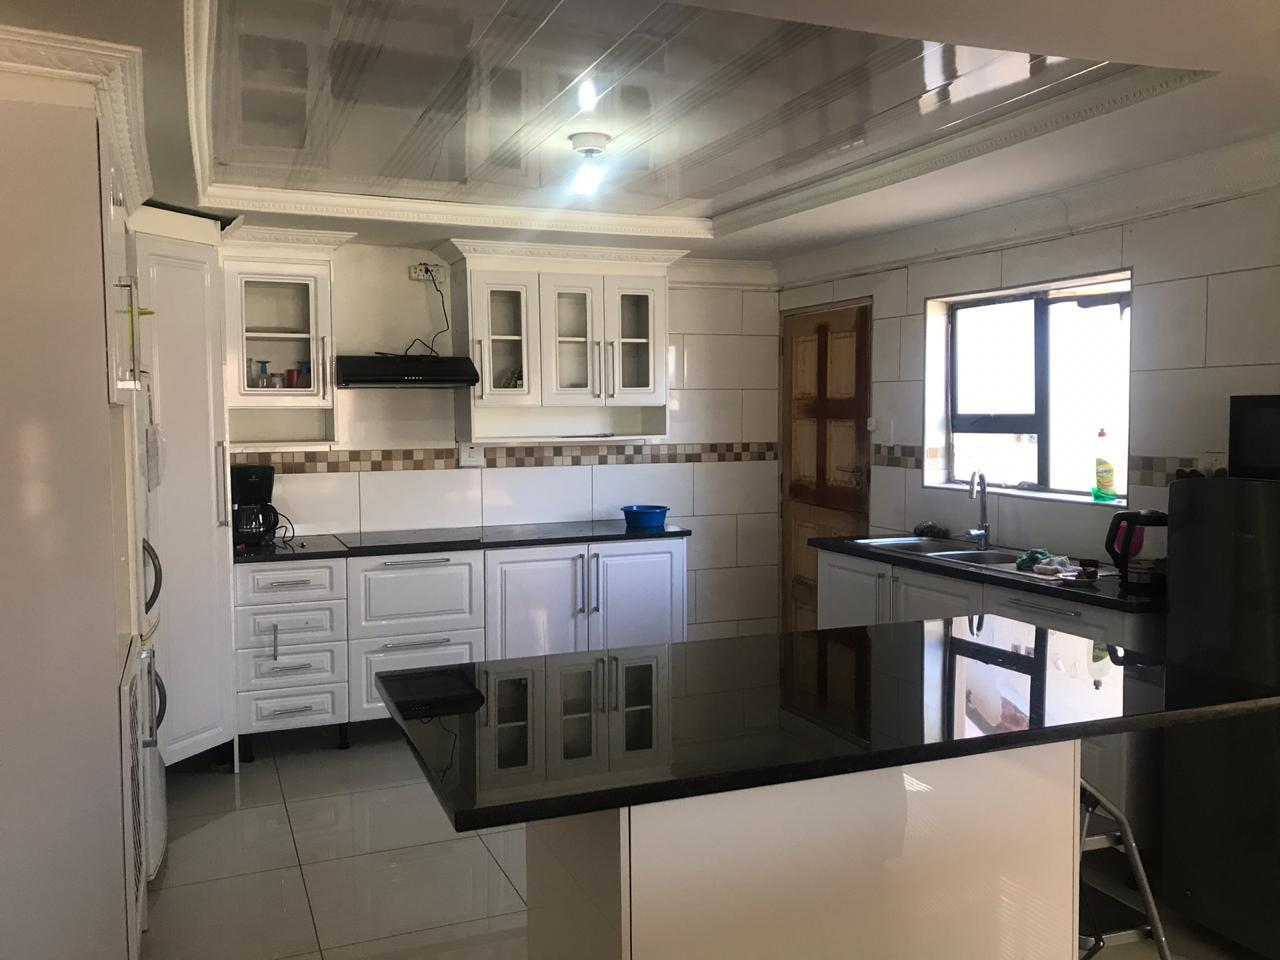 4 Bedroom House For Sale In Elandspoort Re Max Of Southern Africa